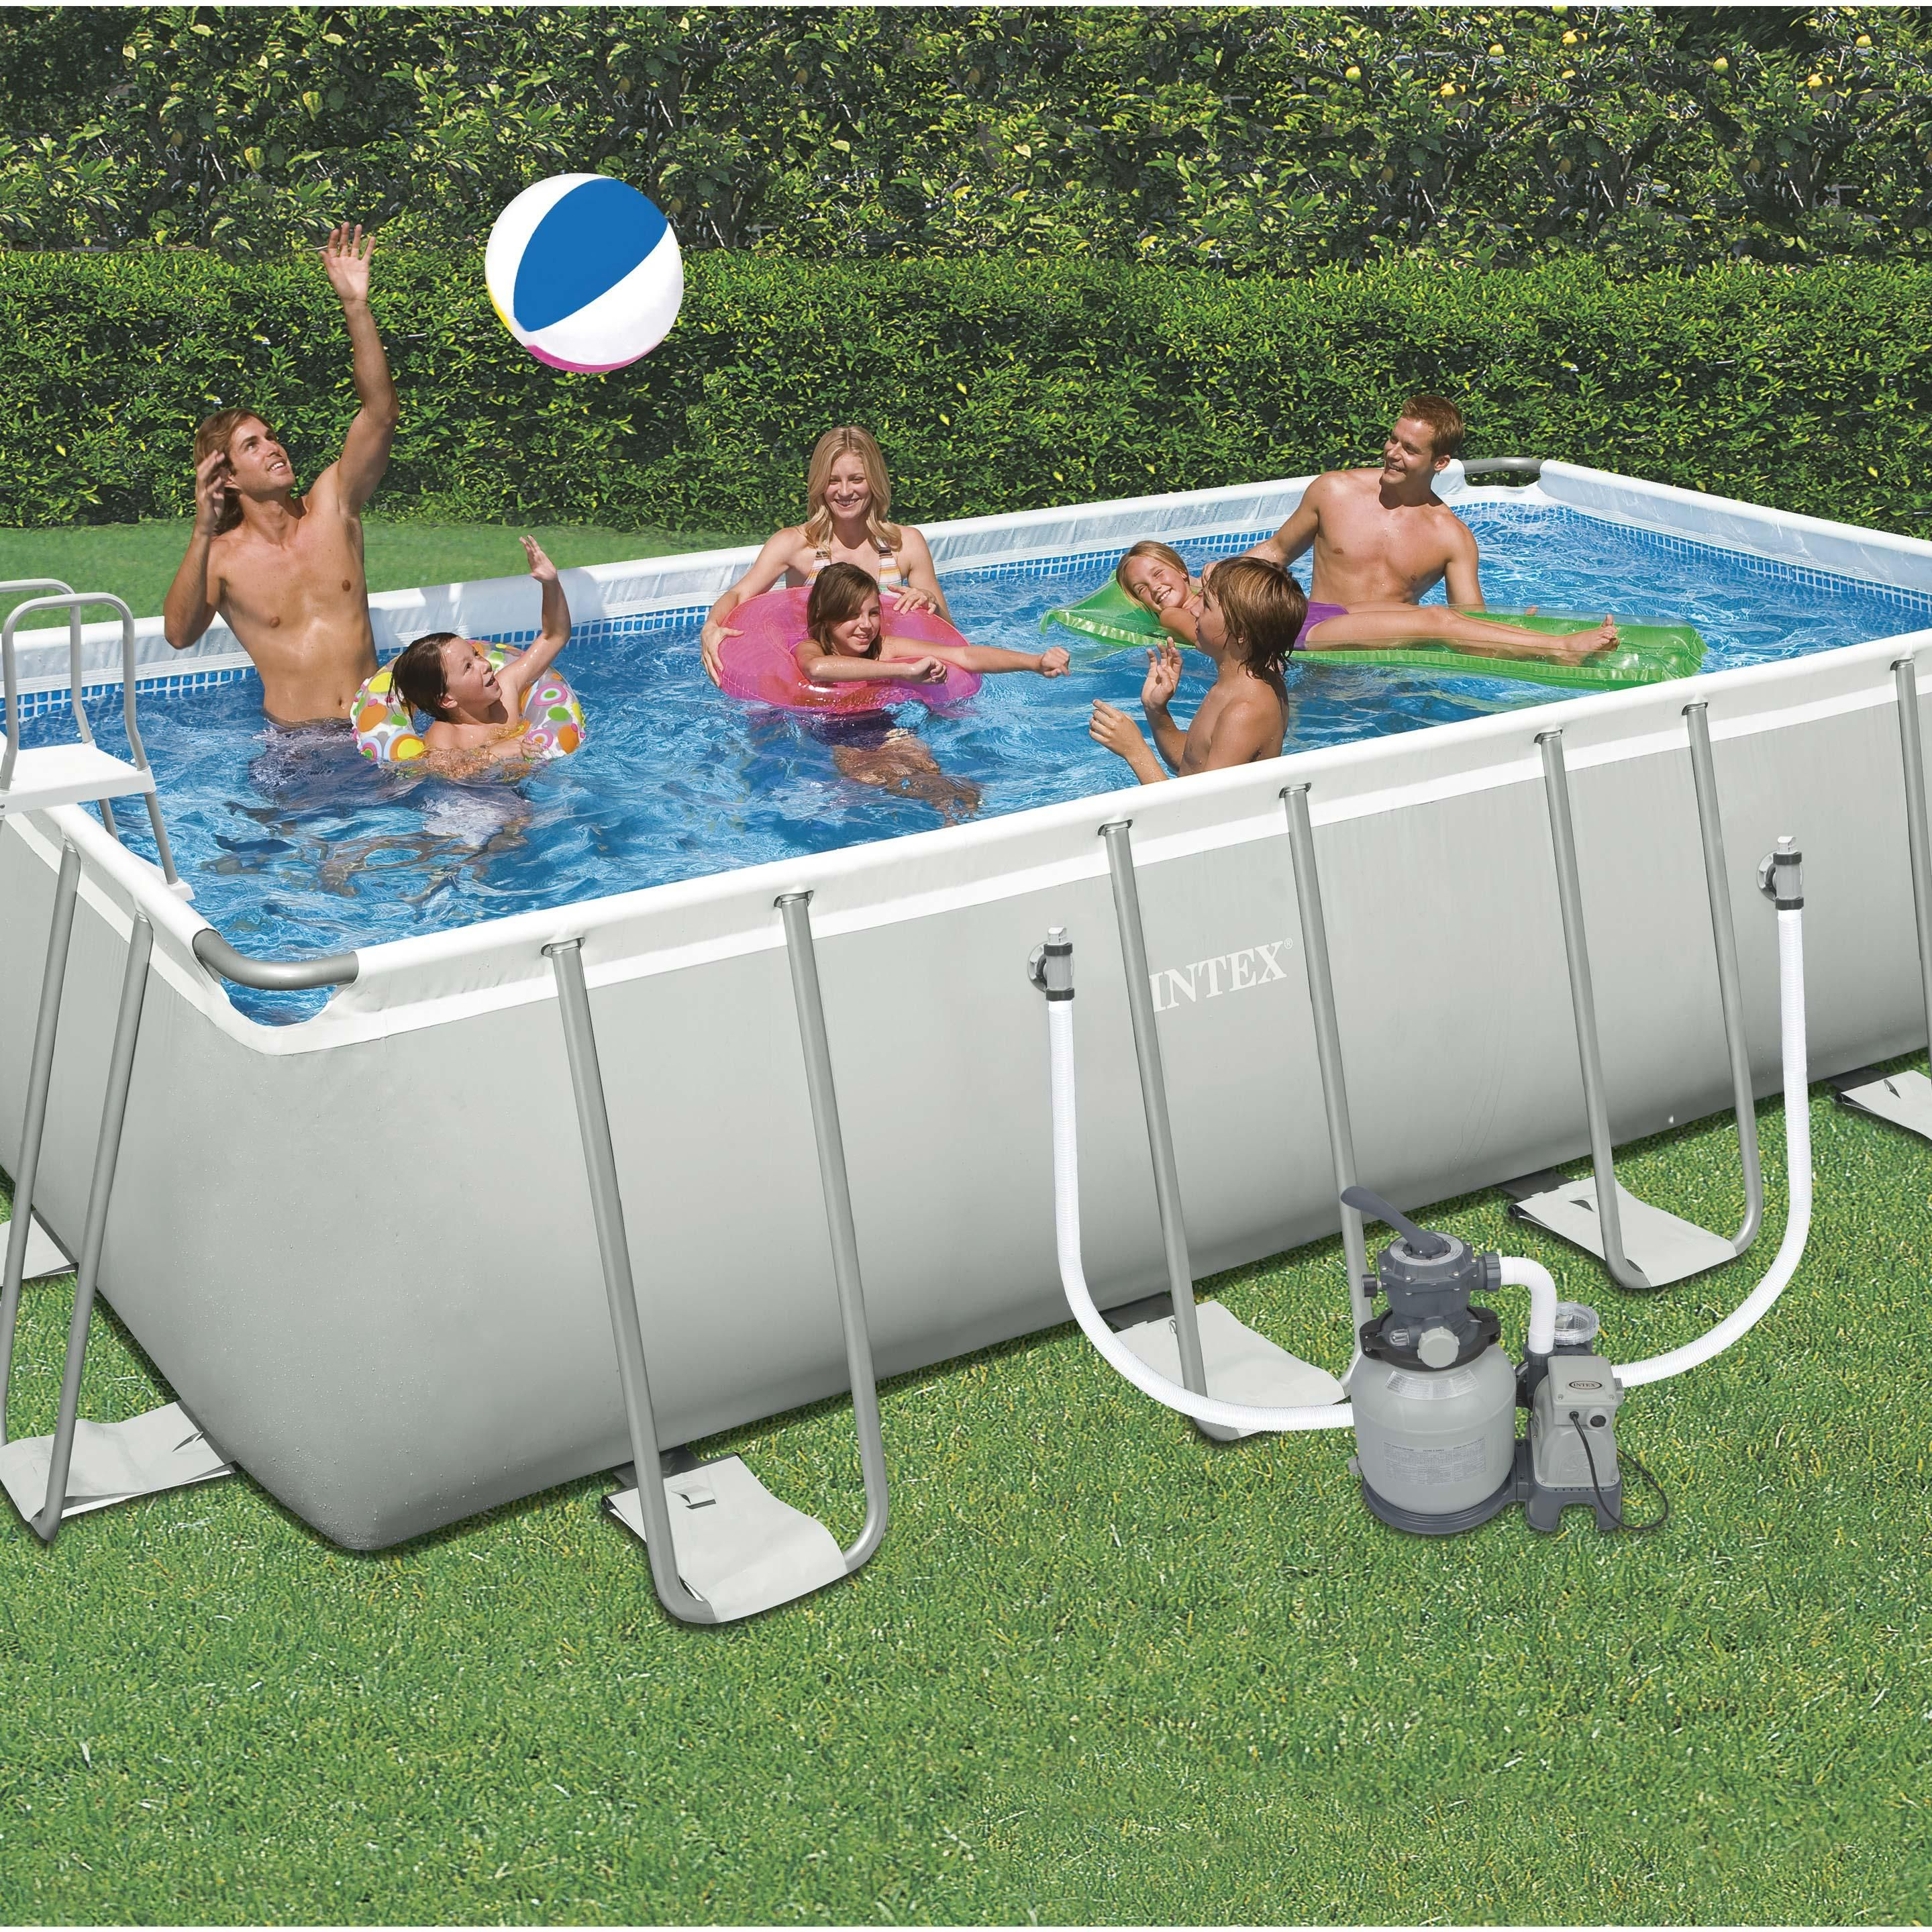 Piscine Tubulaire Ultra Intex, L.6.05 X L.3.3 X H.1.32 M En ... à Piscine Tubulaire Intex Pas Cher